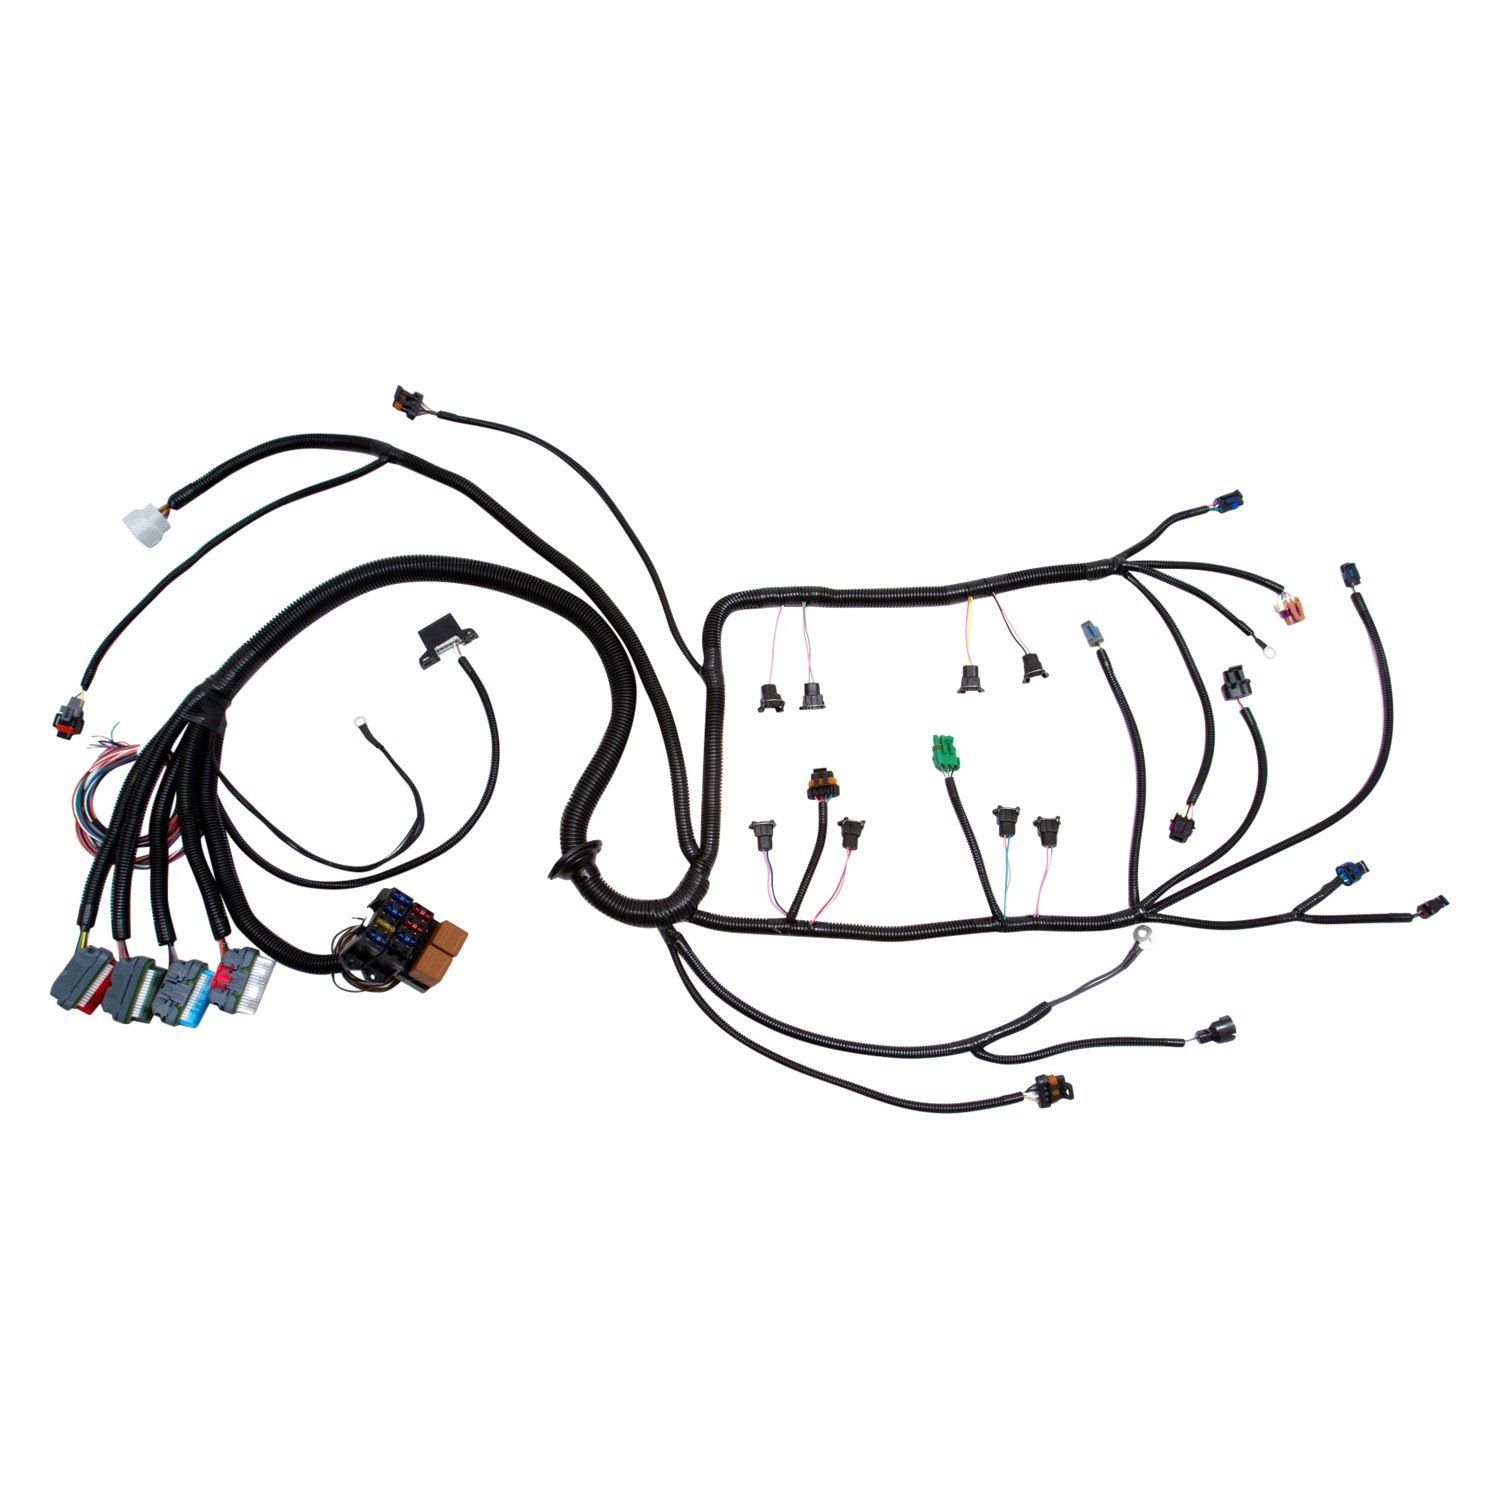 Automotive Wiring Harness Is